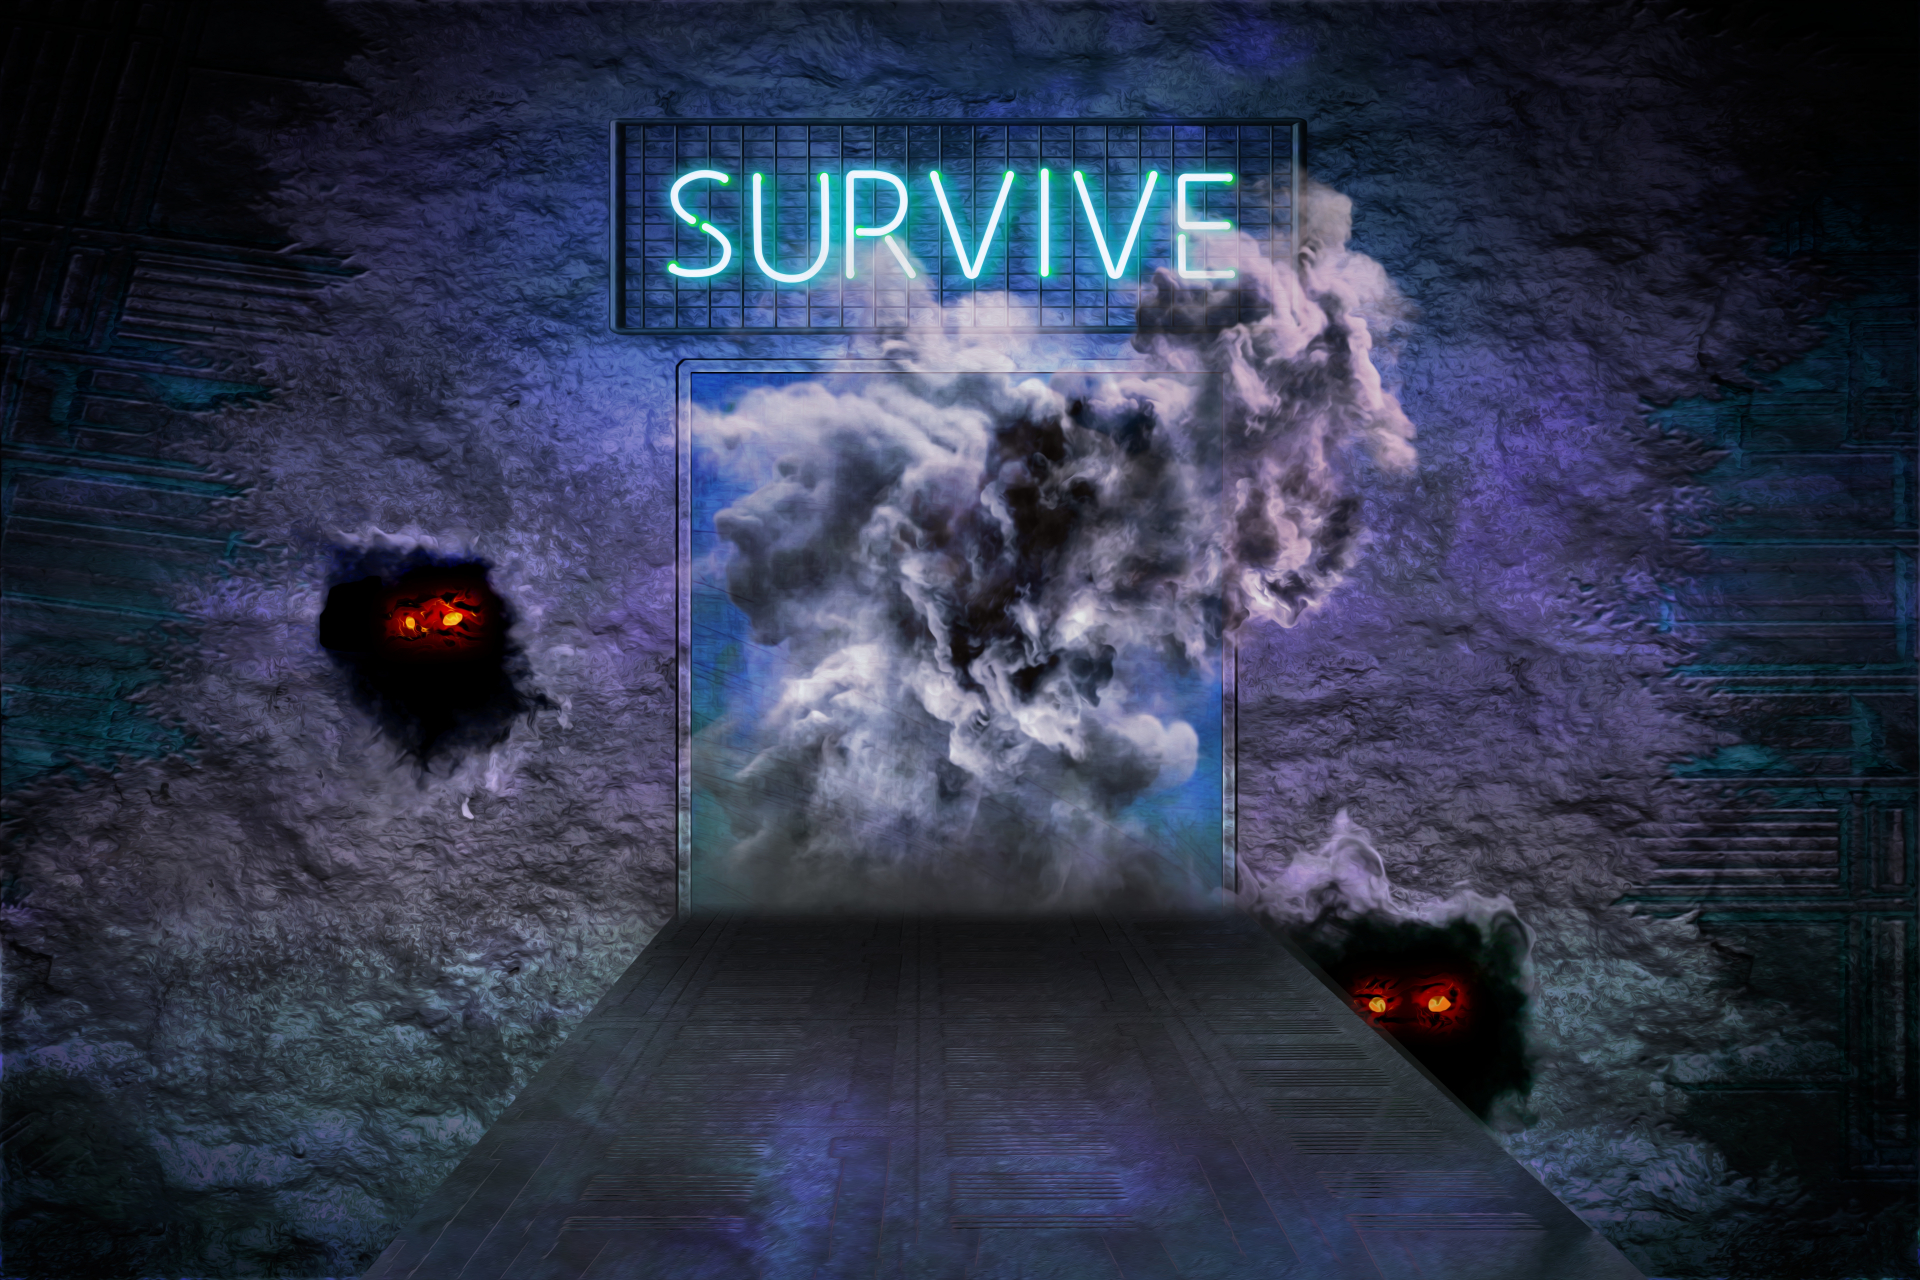 old world survival duality entropy game